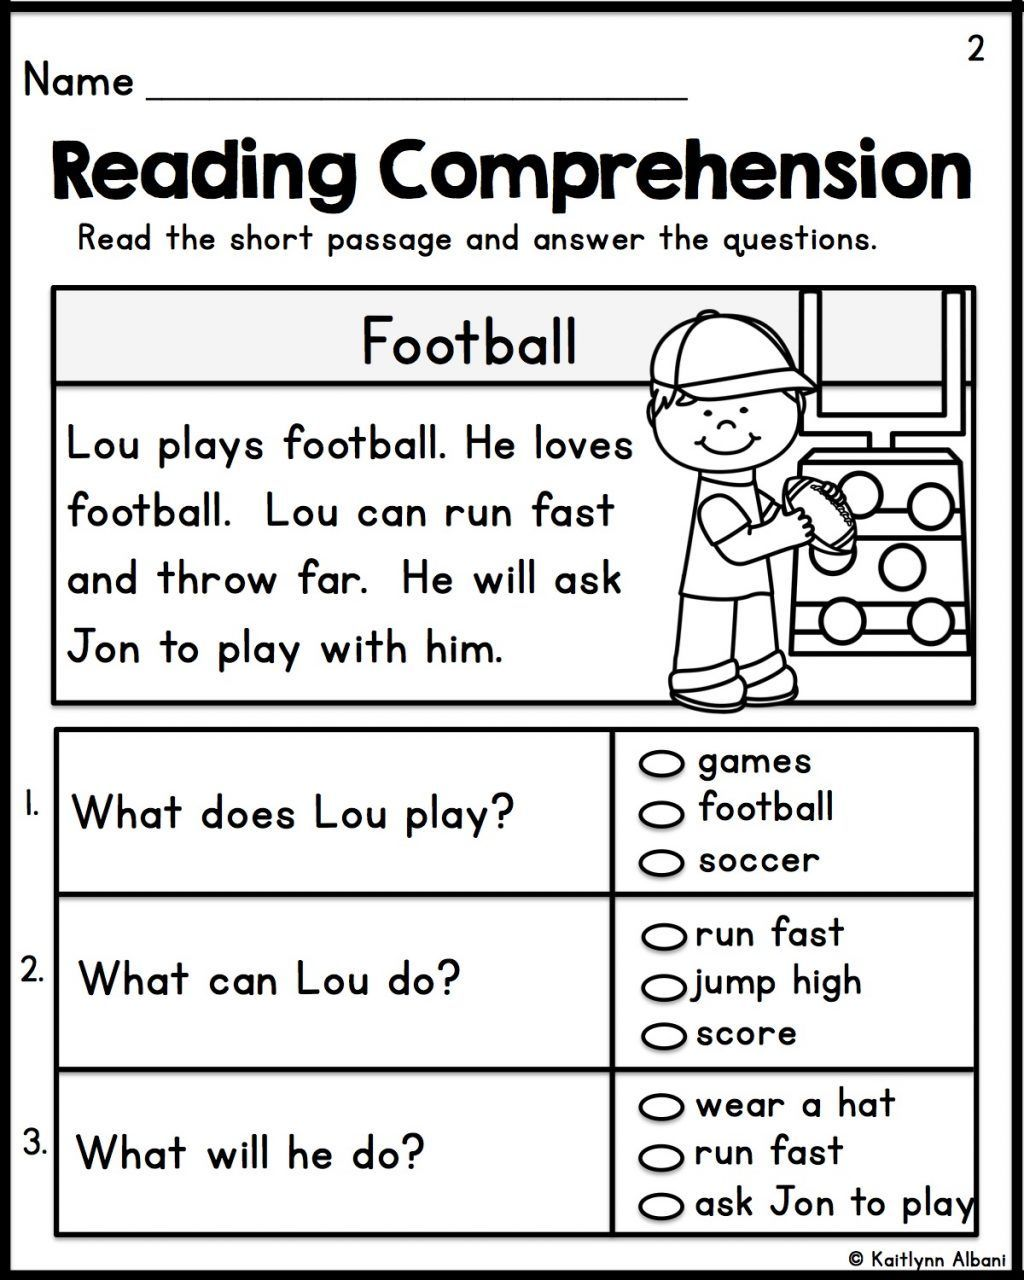 Reading Comprehension Worksheets Simple Reading